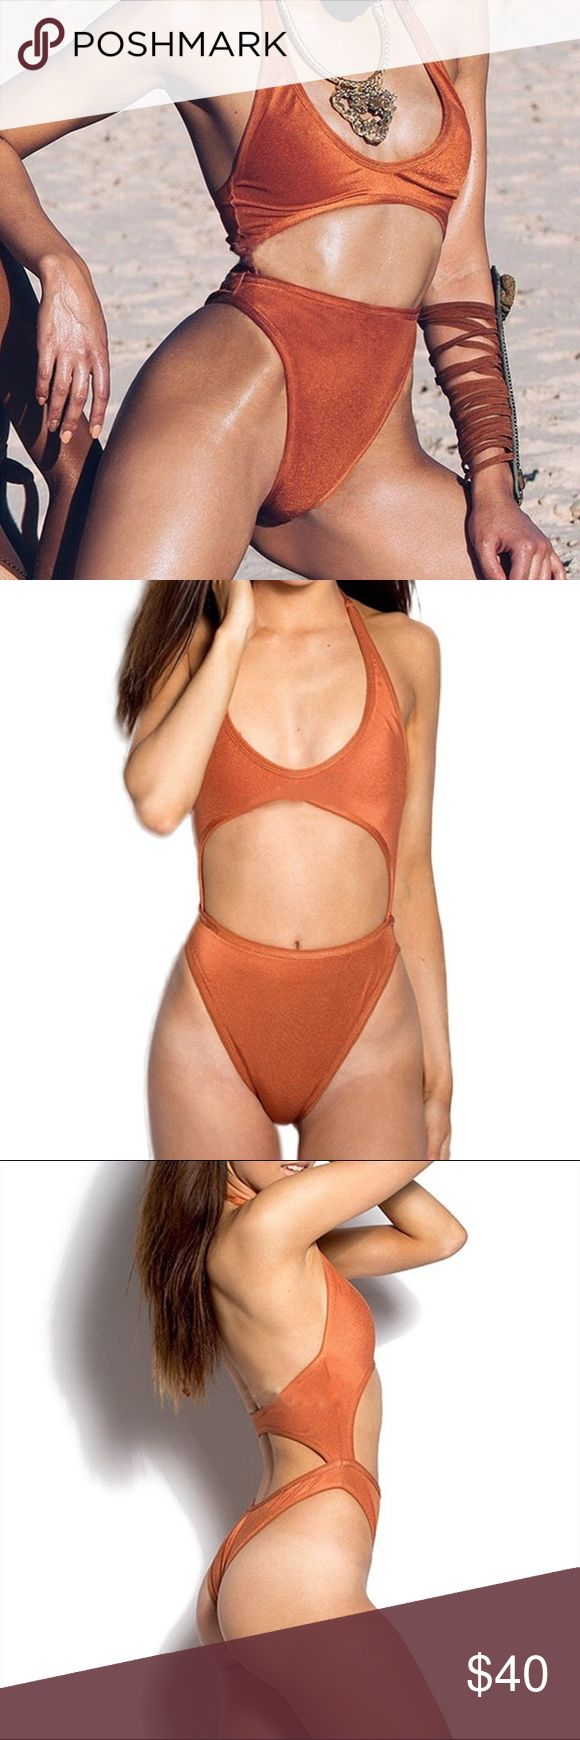 Sexy velvet cut out onepiece monokini Solid orange velevet cut out monokini onepiece swimsuit. Stretchy fabrication Swim One Pieces